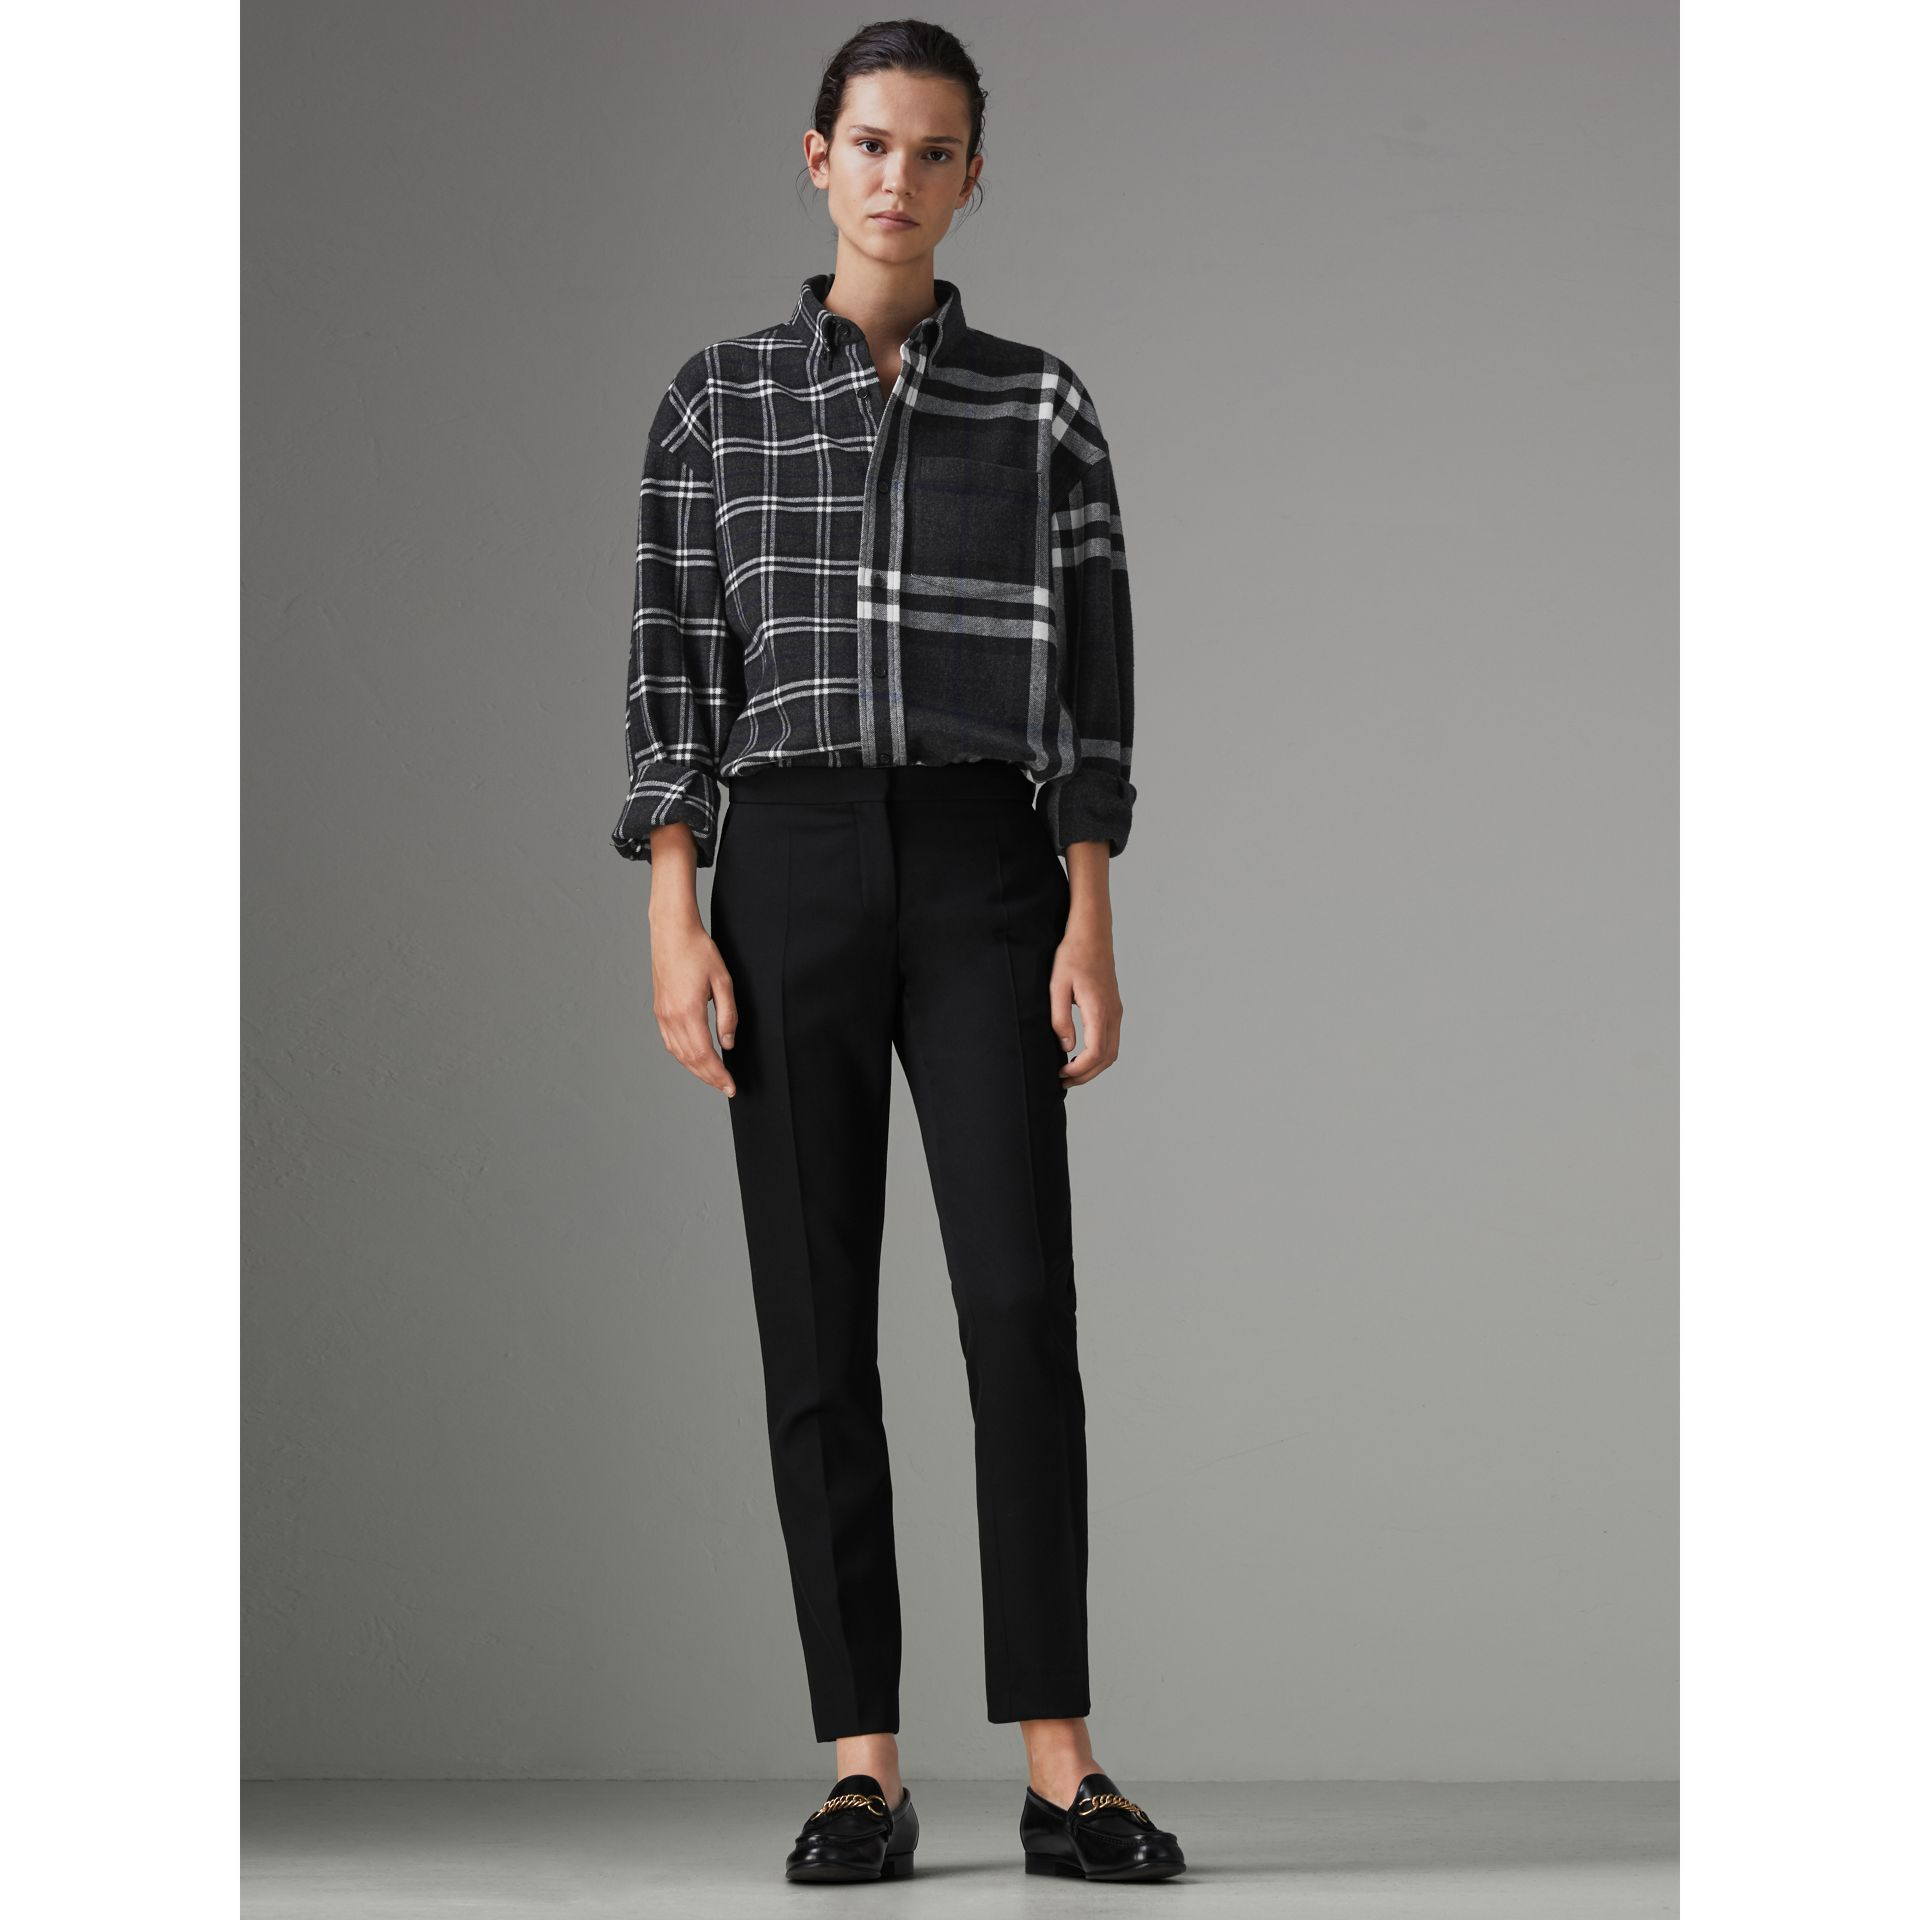 Gosha x Burberry Check Flannel Shirt in Charcoal | Burberry United States - gallery image 2